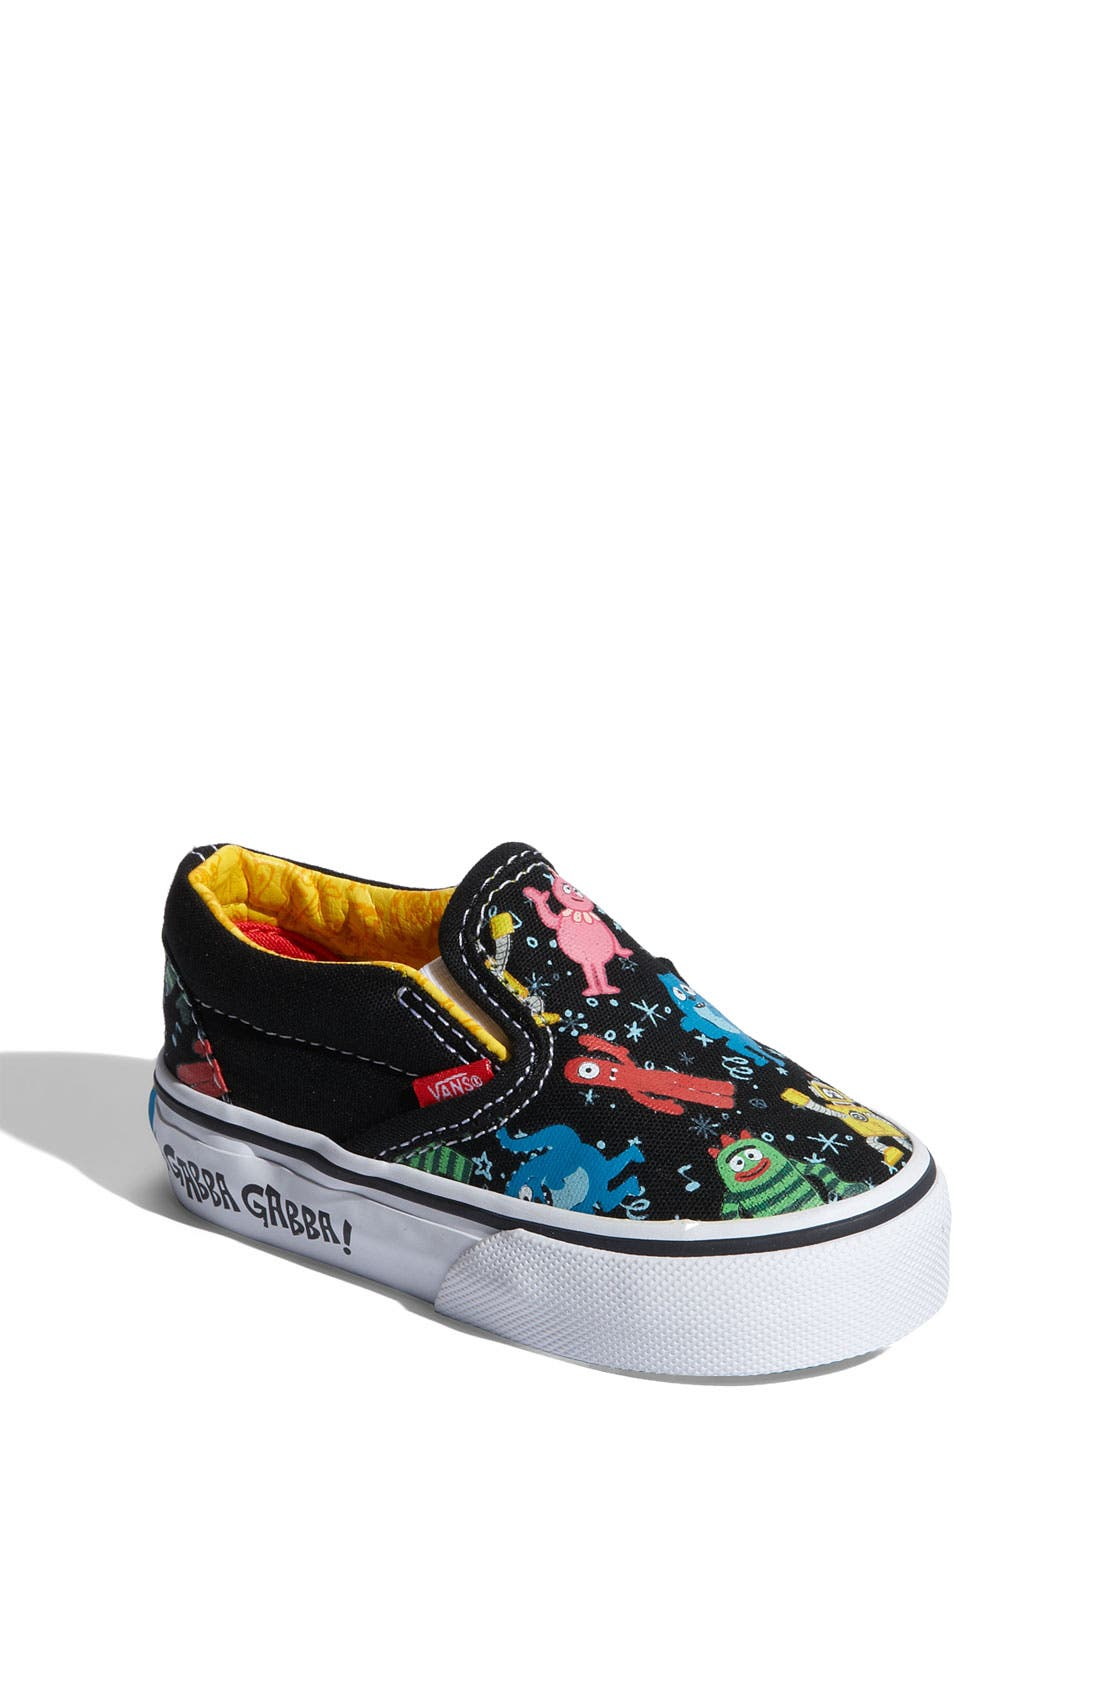 Main Image - Vans 'Classic' Print Slip-On (Walker, Toddler & Little Kid)